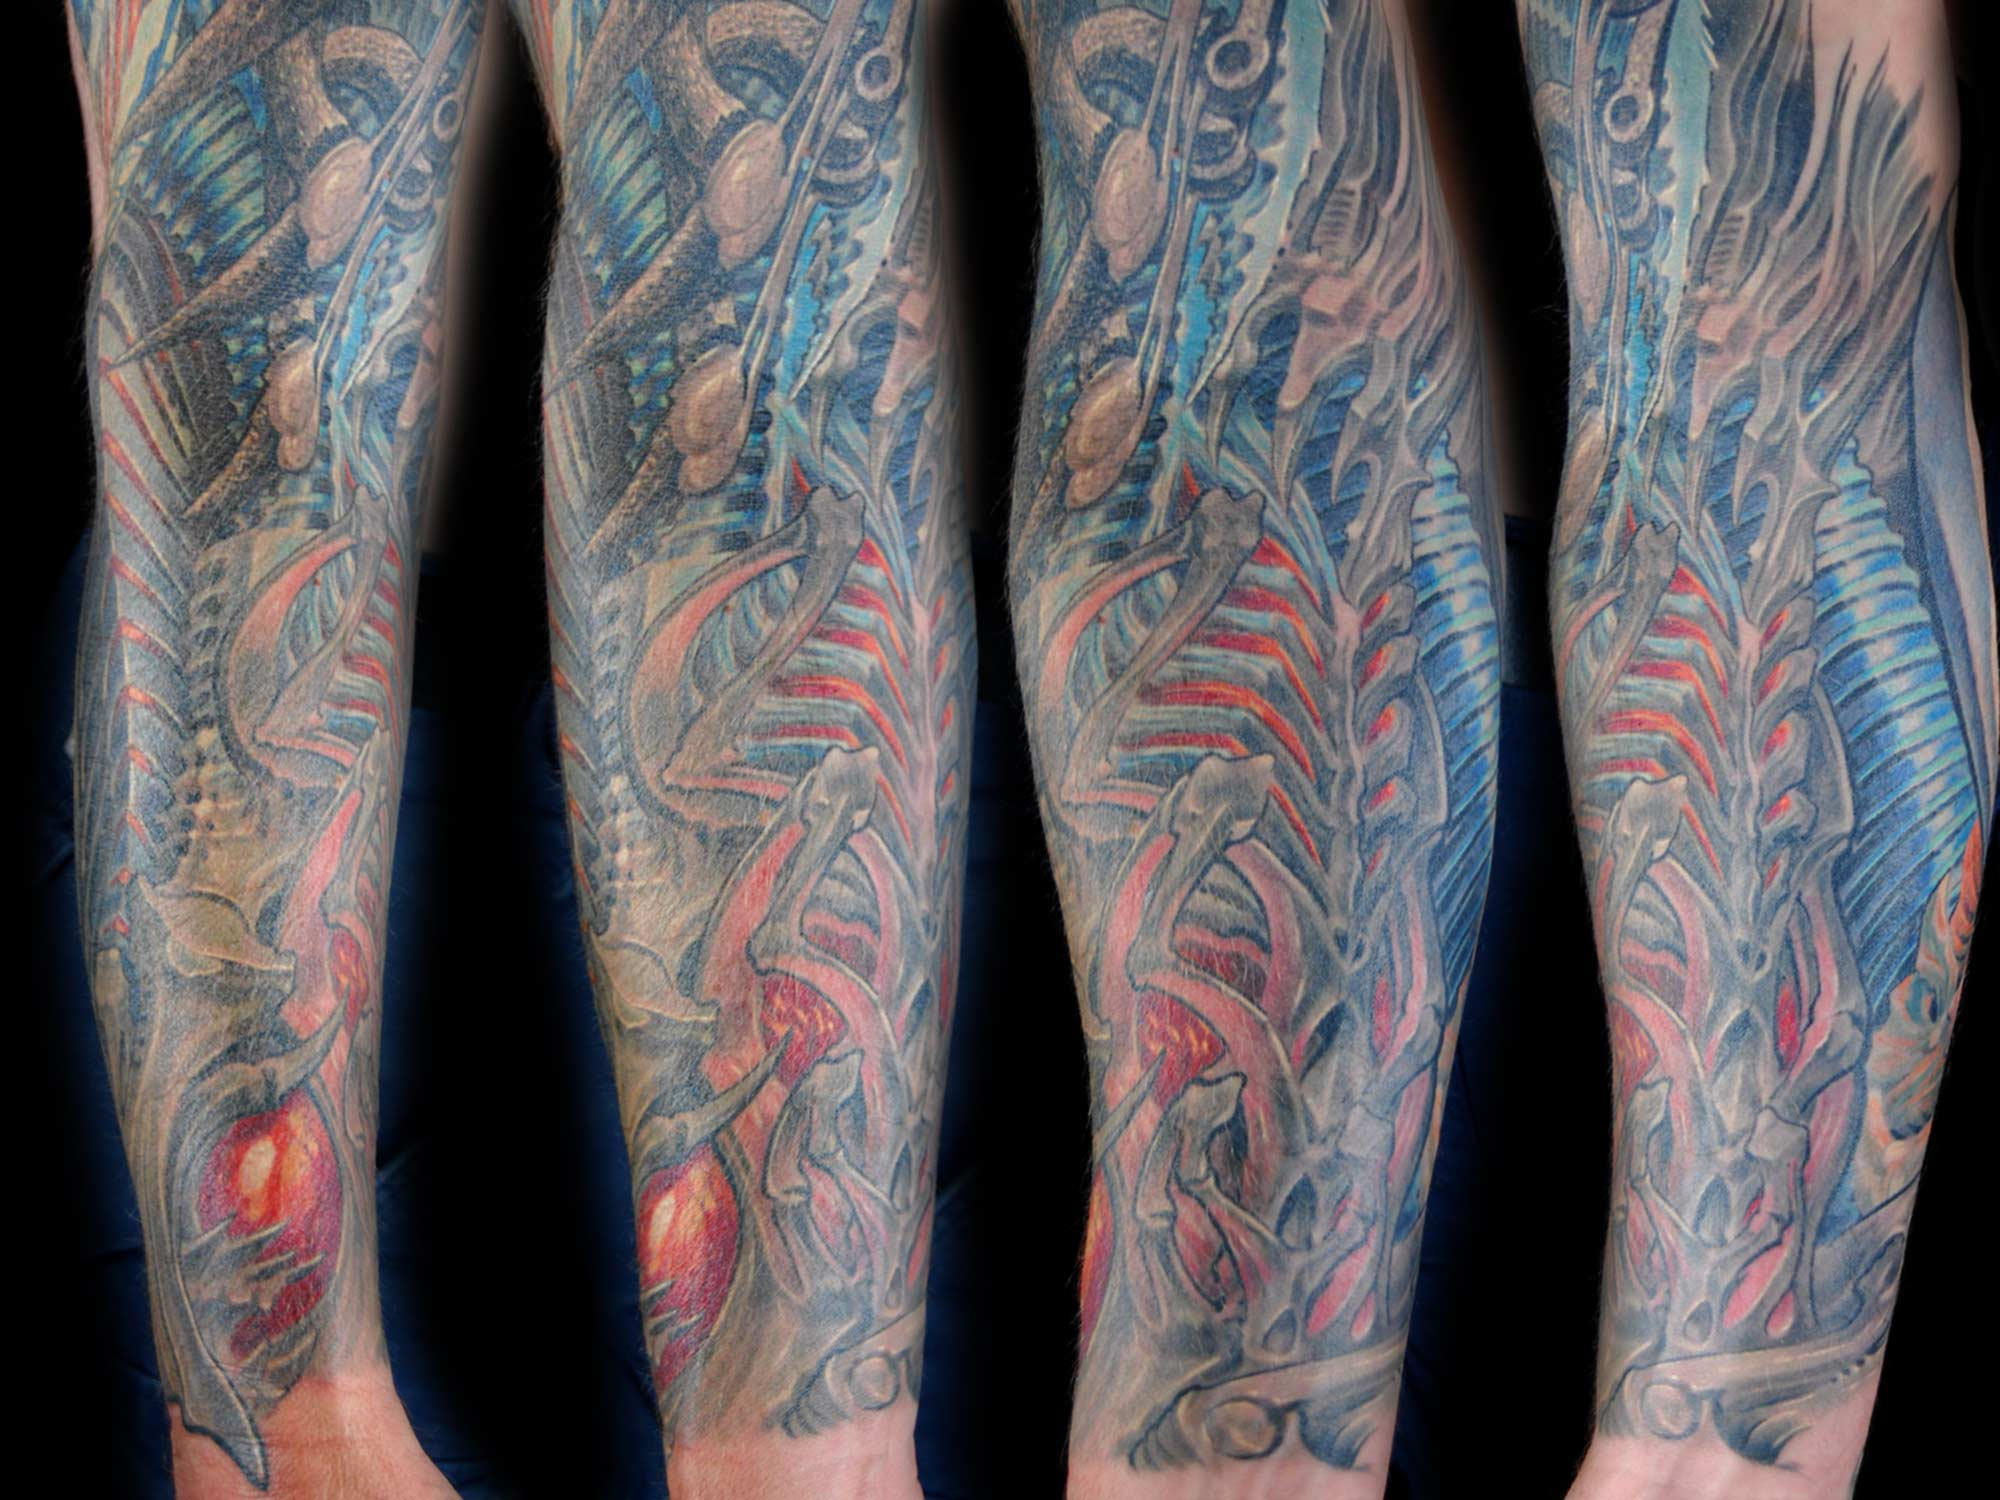 Biomechanik-Alien-Arm-Tattoo-Hits-for-Life-Shit-for-life-Raul-München1